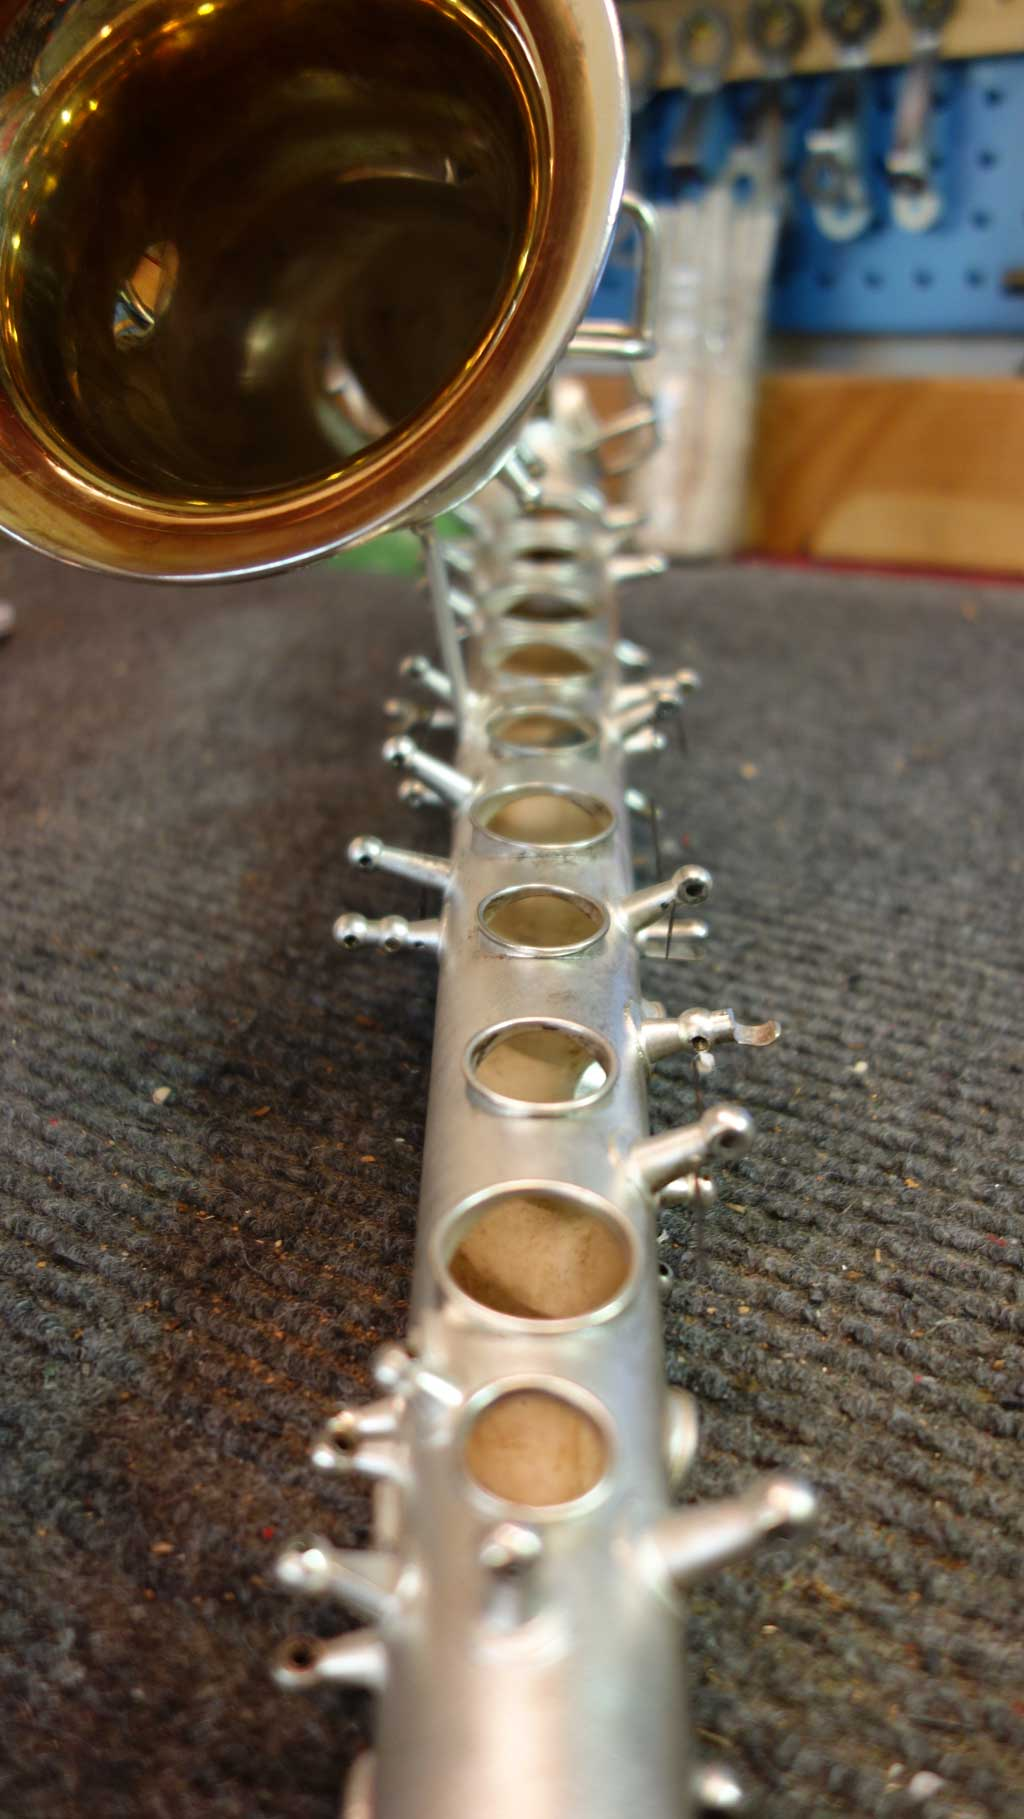 saxophone tone holes, Conn, C melody, New Wonder, Naked Lady, silver plated, gold wash bell